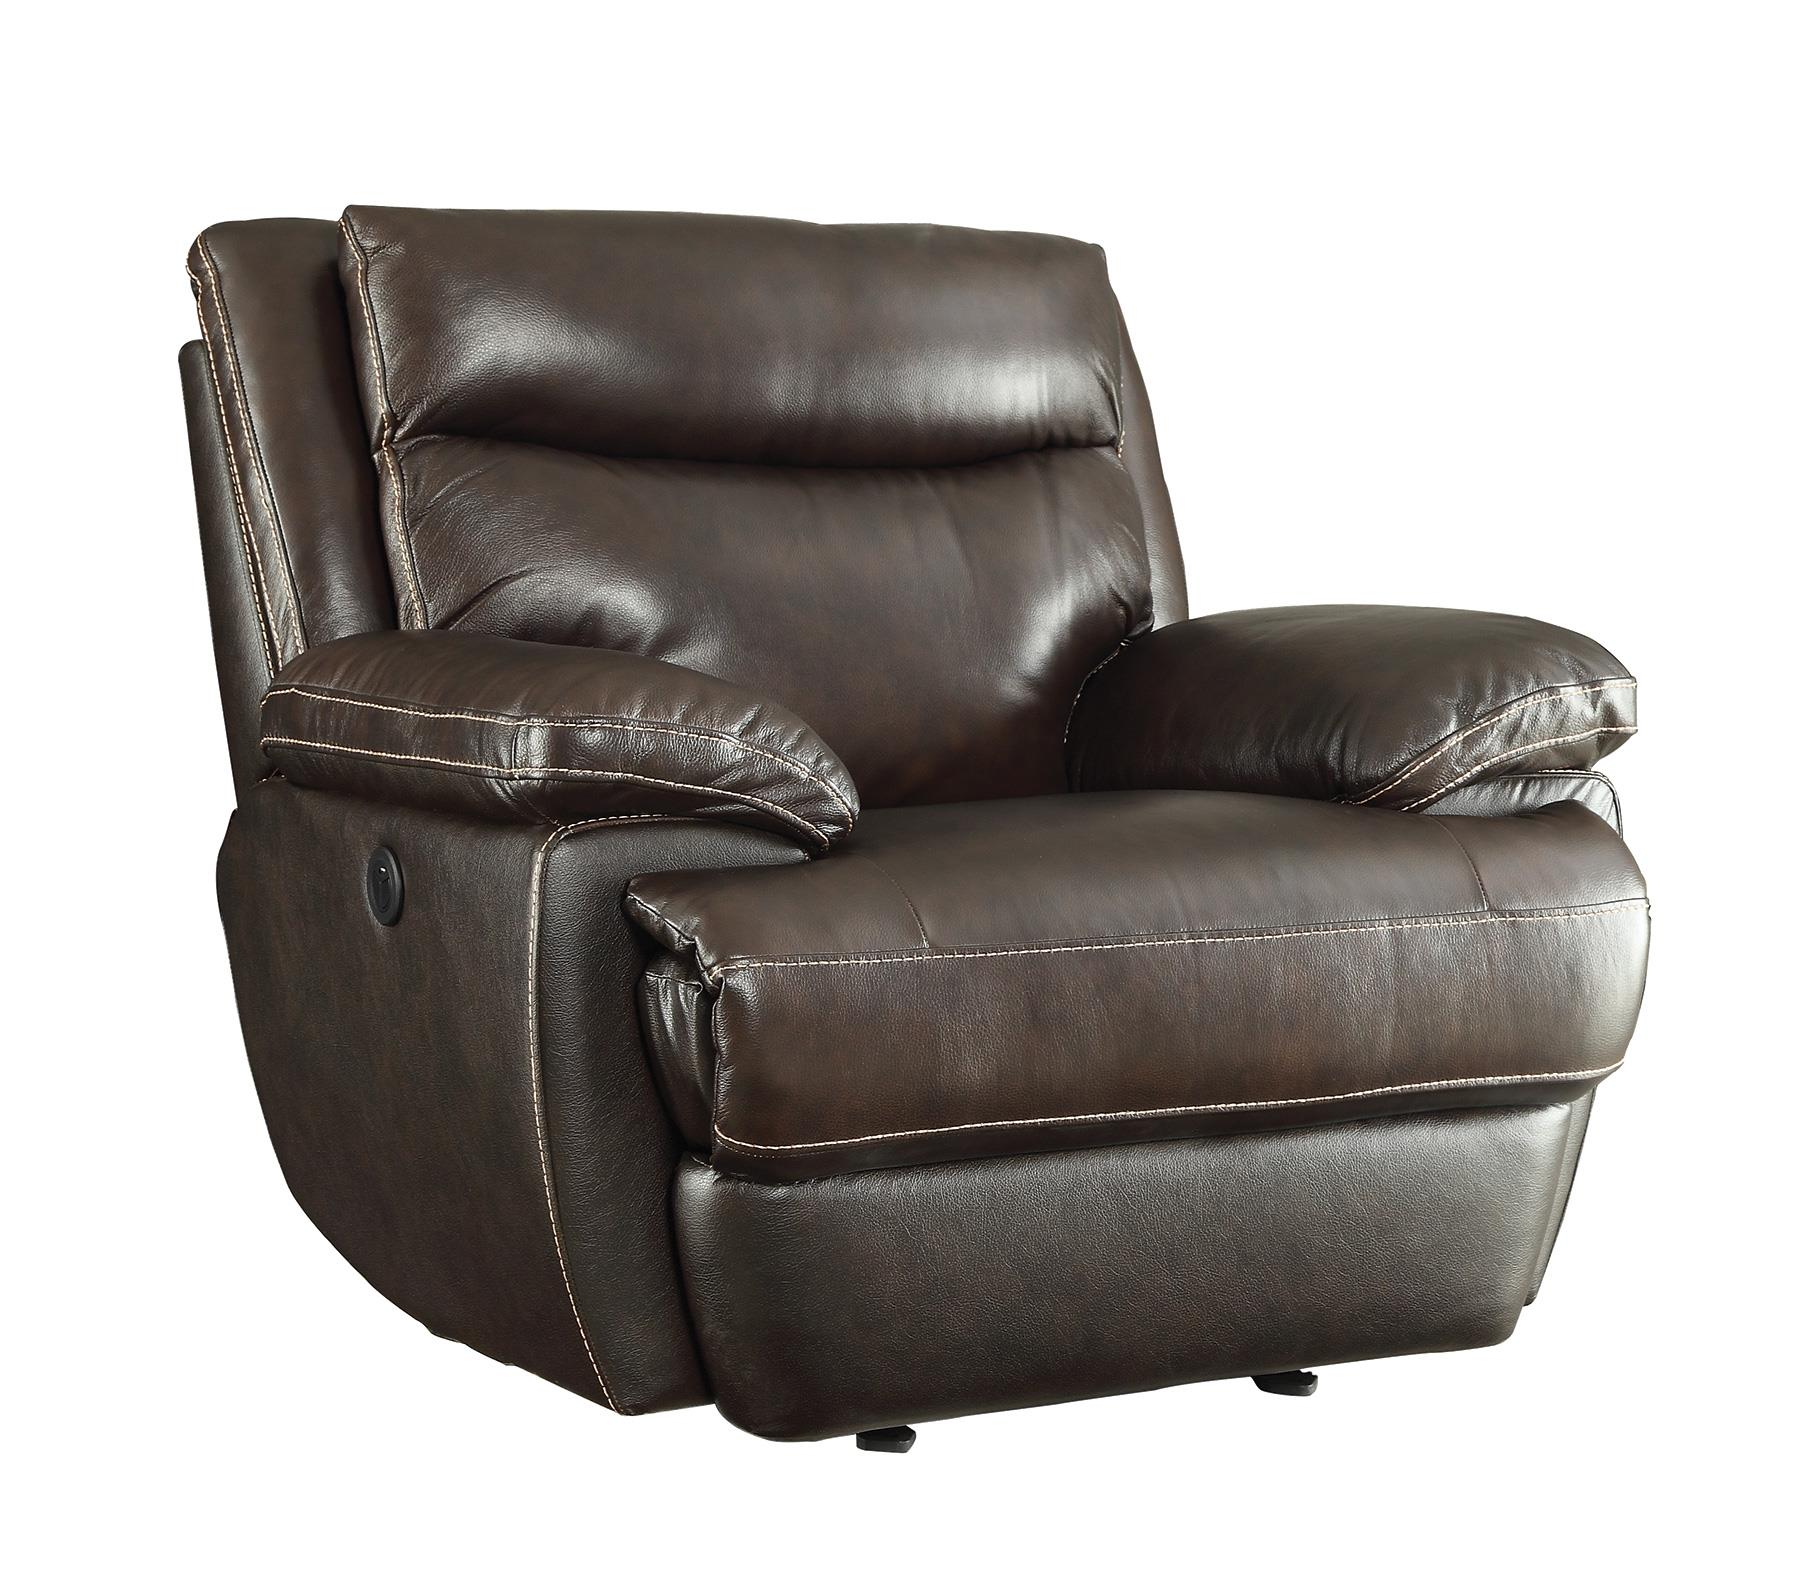 Coaster MacPherson Power Recliner - Item Number: 601813P